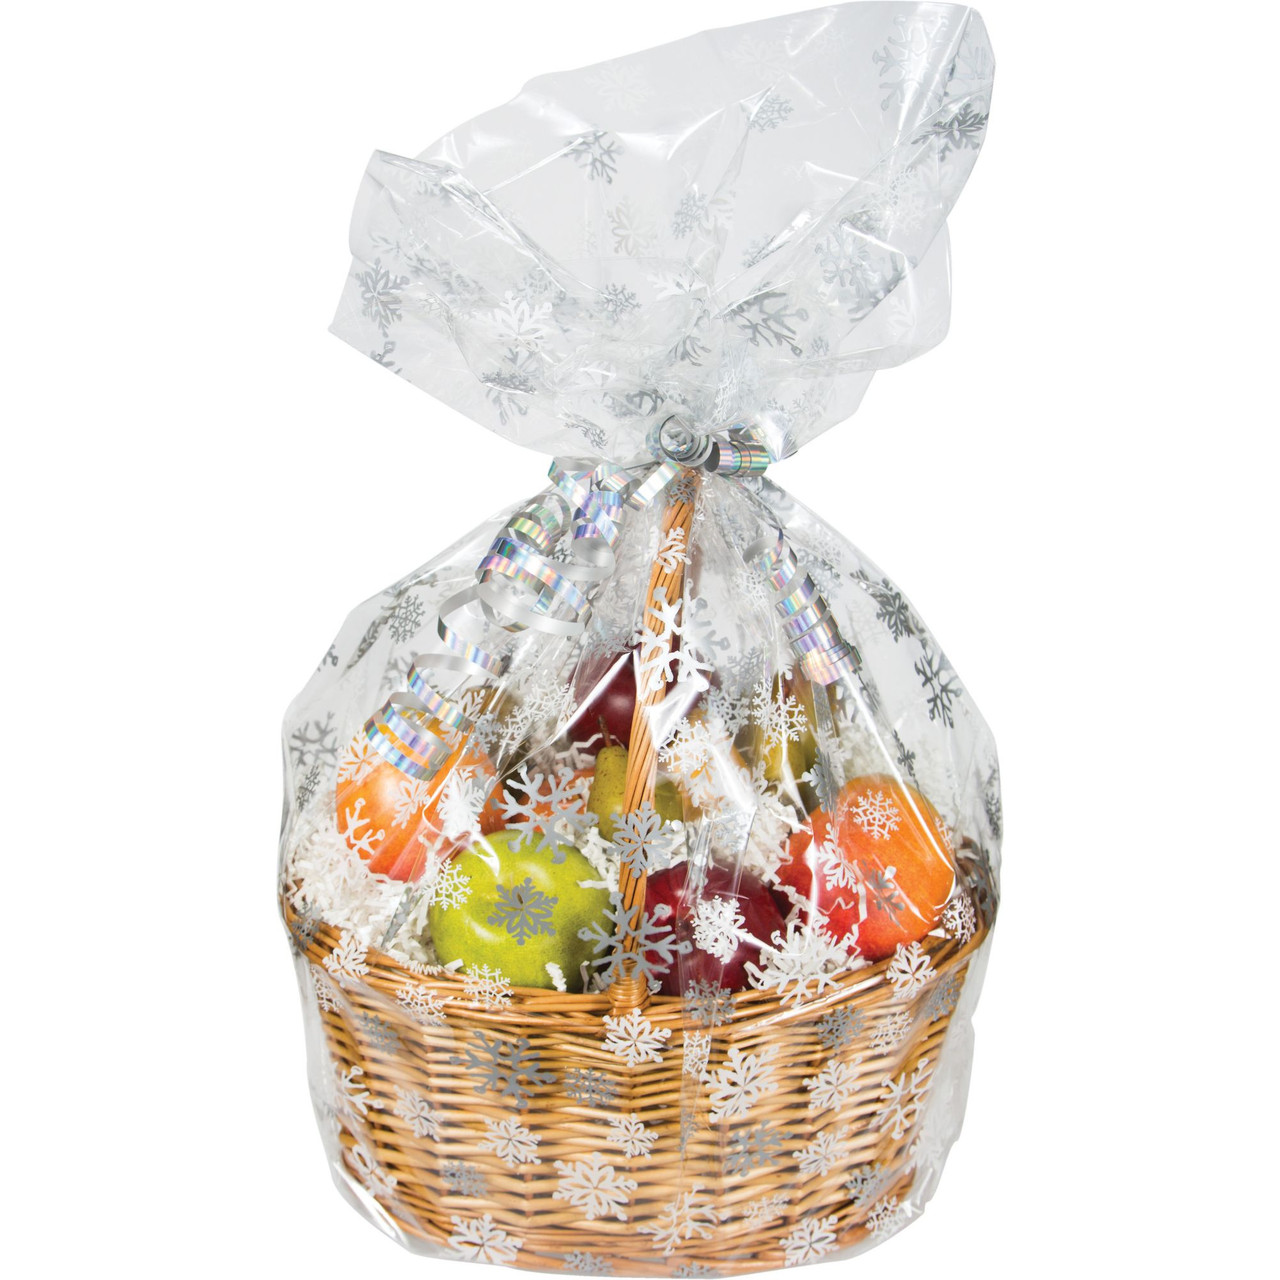 Pack Of 12 Clear Large Snowflake Christmas Cellophane Gift Basket Bags 24 31008786